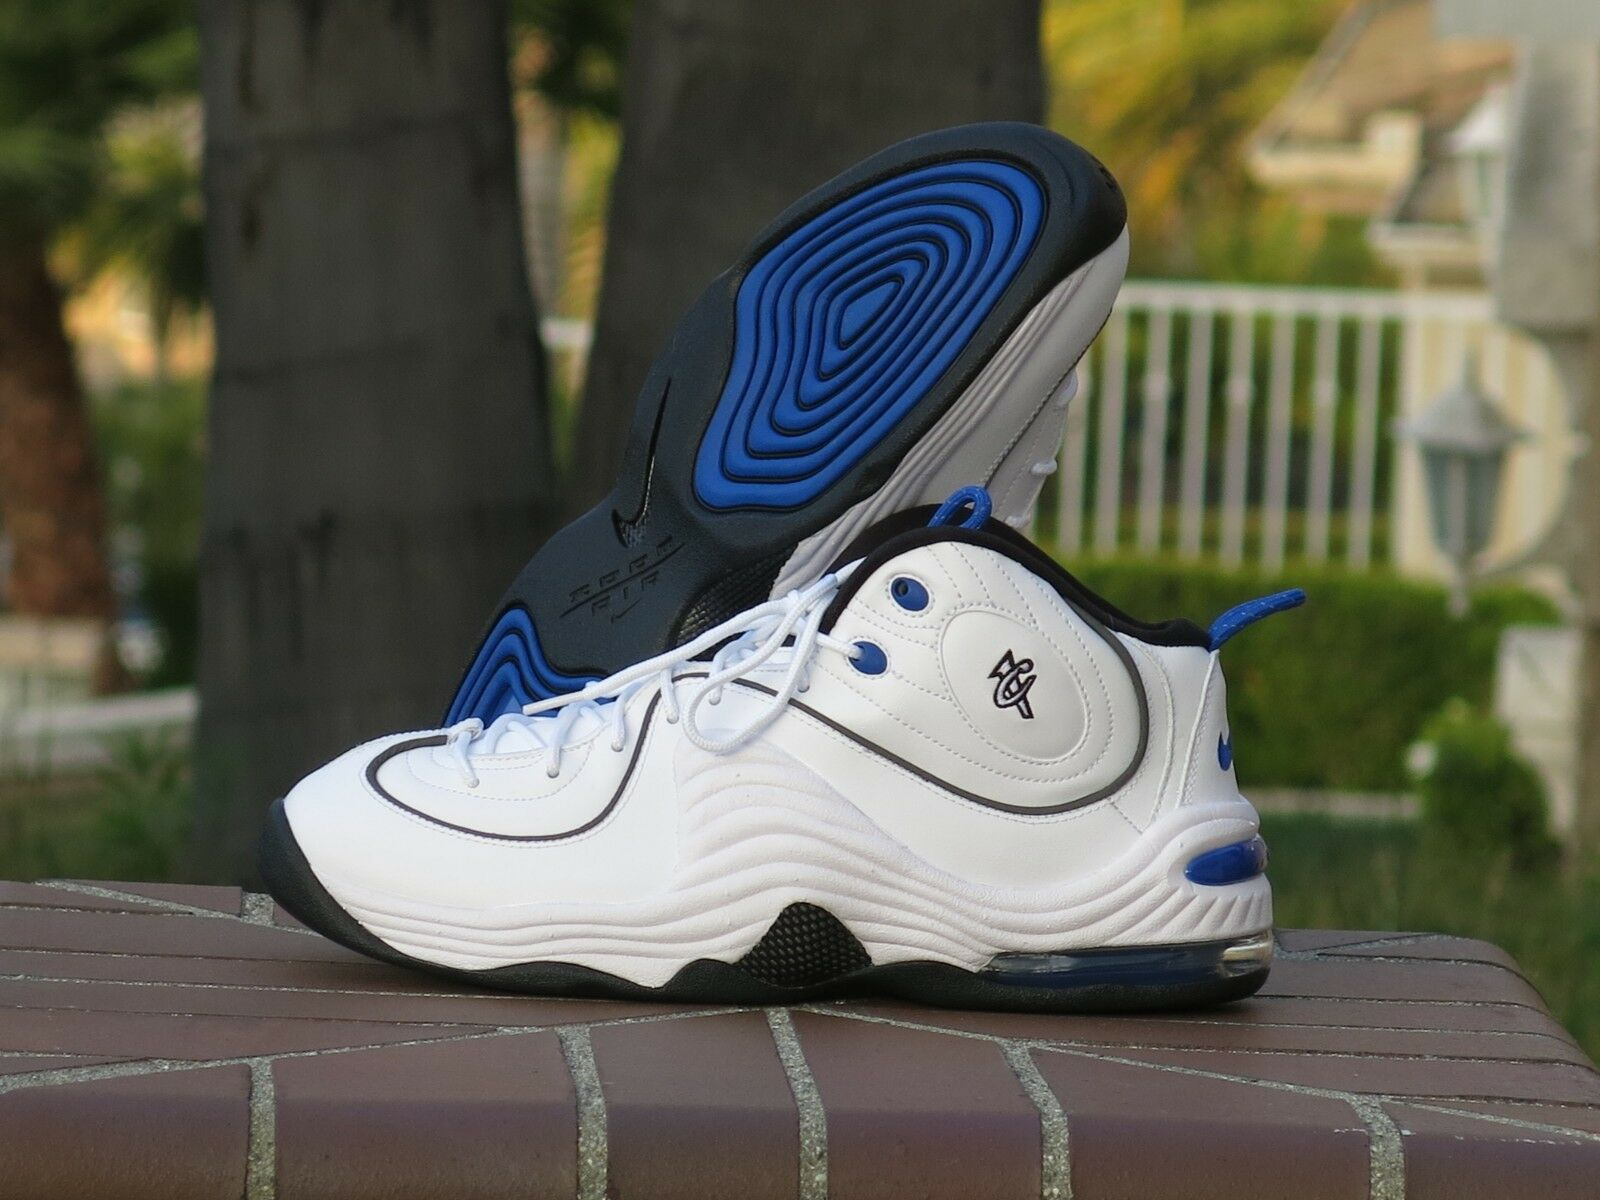 33b4f92f16 Nike Air Penny II Basketball shoes 333886-100 Men's pwvxnq3461-Athletic  Shoes